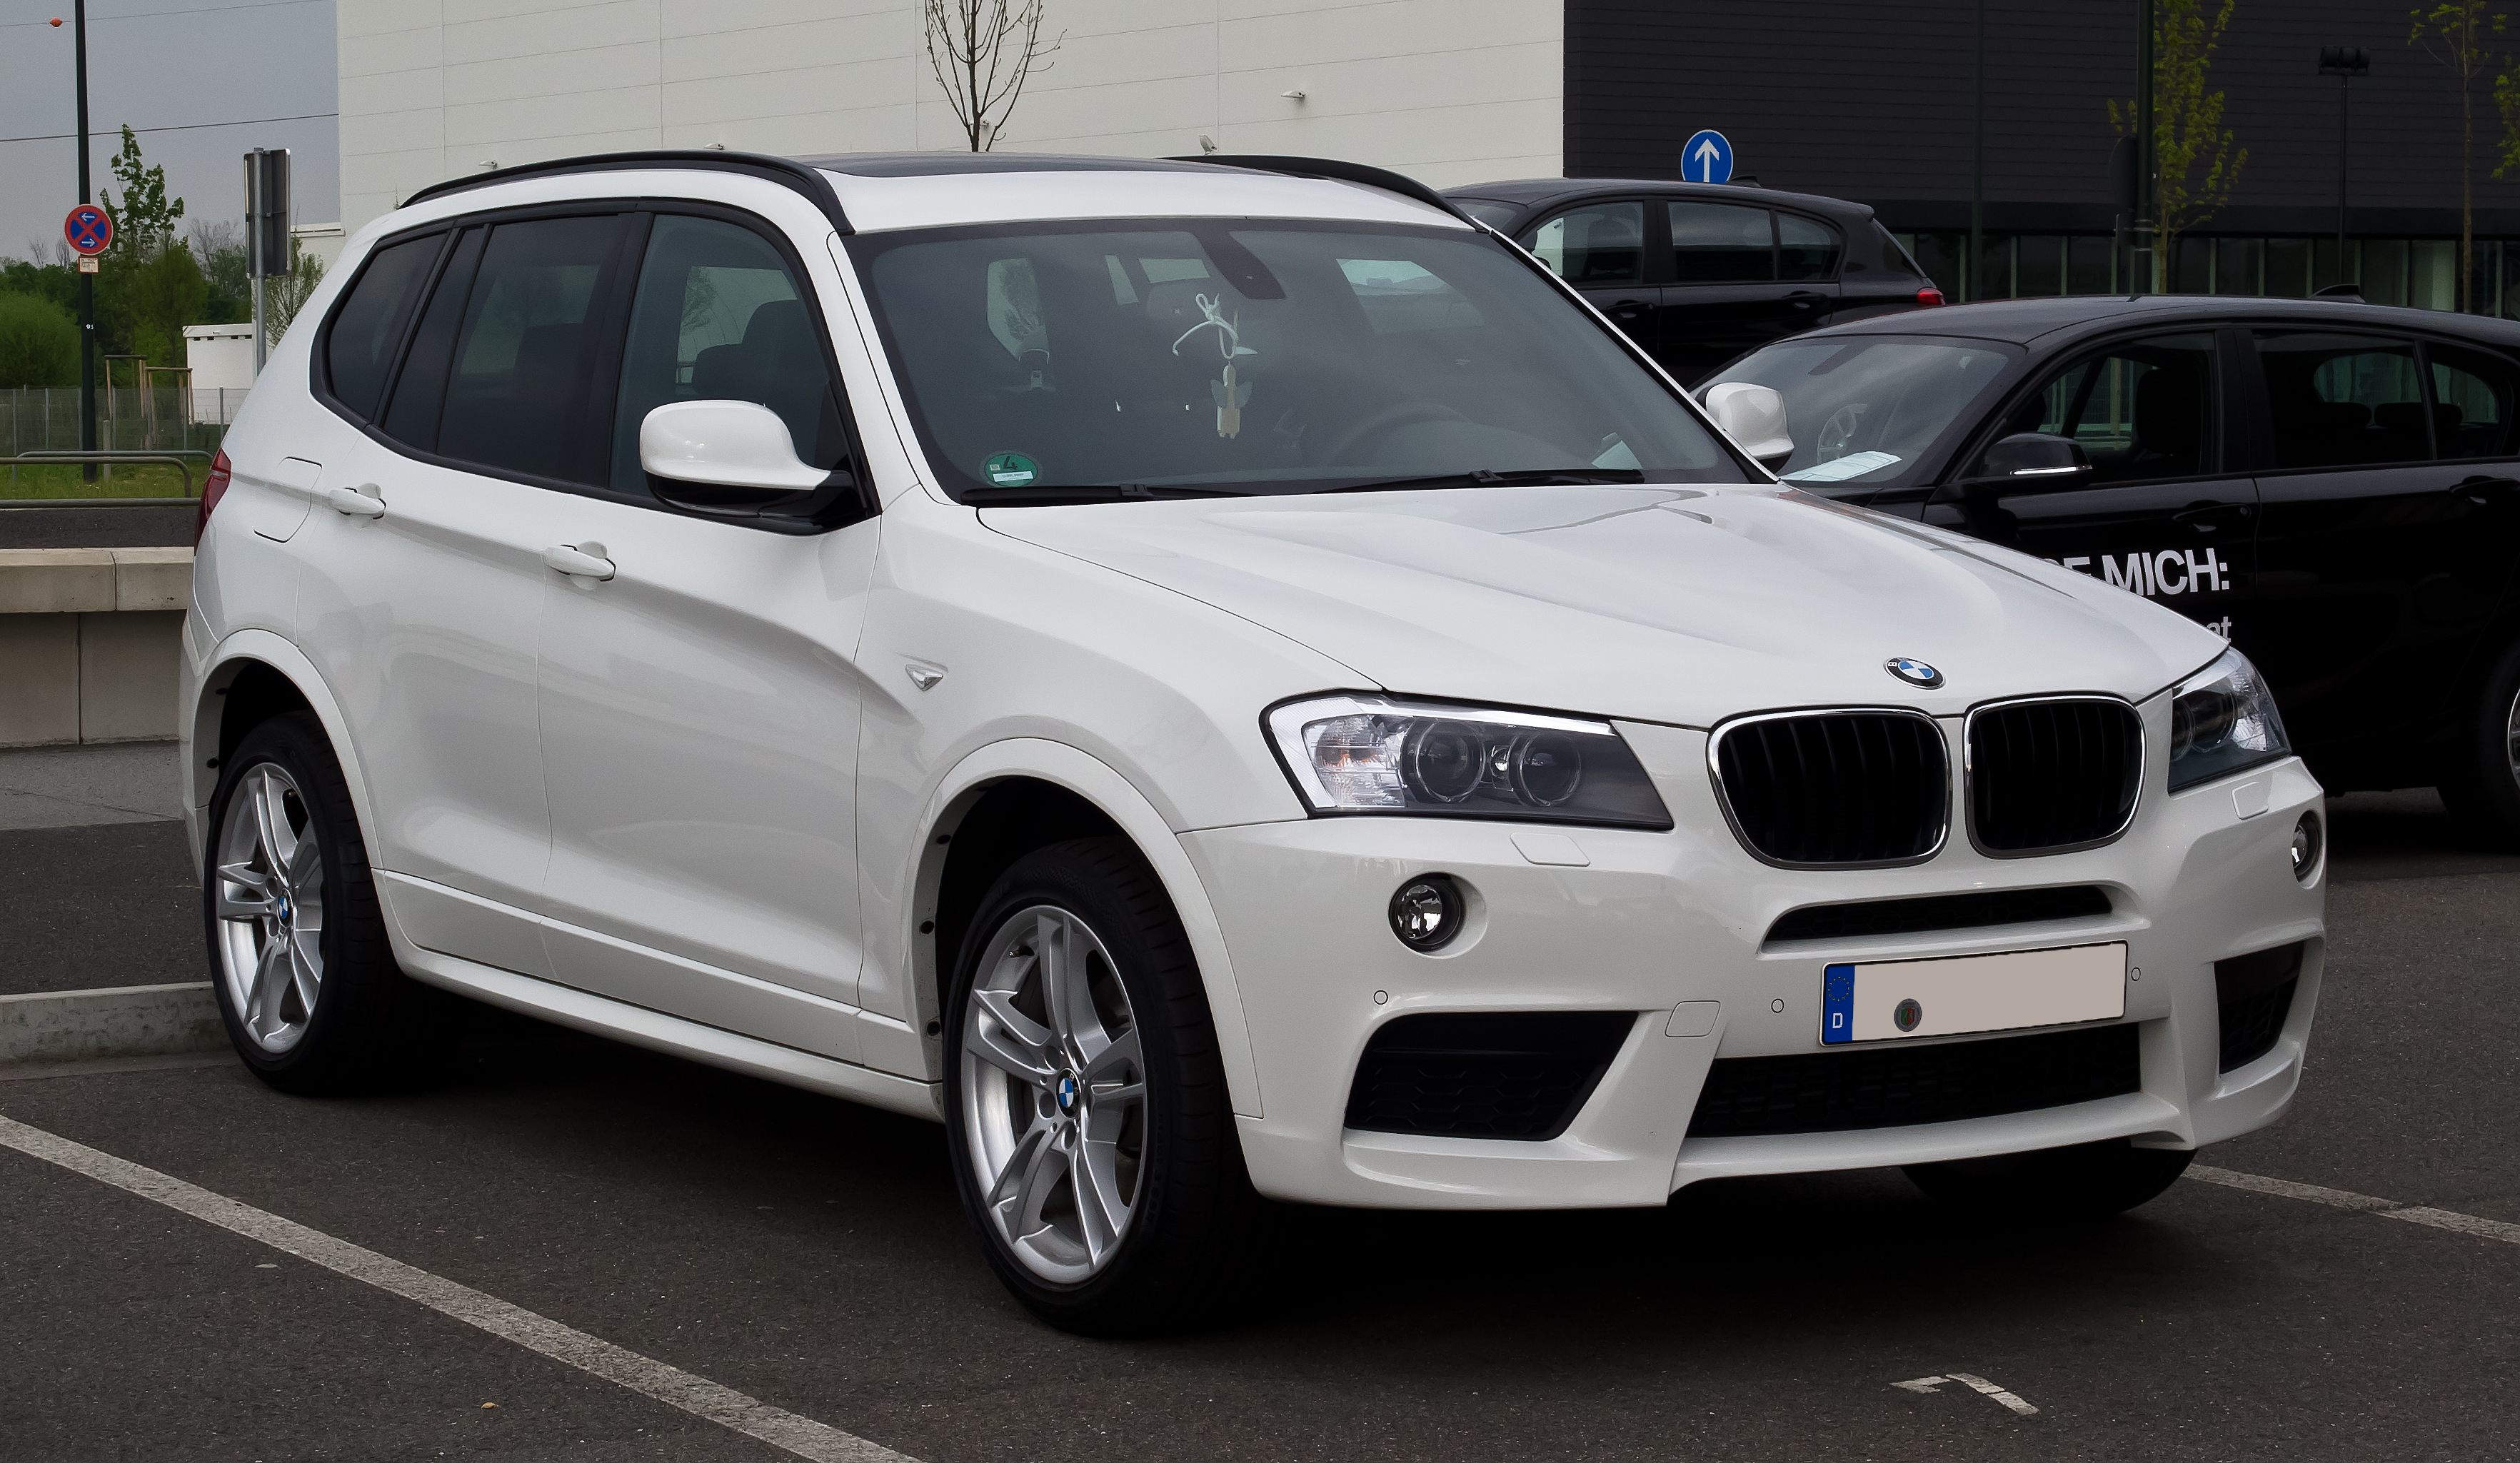 file bmw x3 m sportpaket f25 frontansicht 1 mai 2012 d wikimedia commons. Black Bedroom Furniture Sets. Home Design Ideas